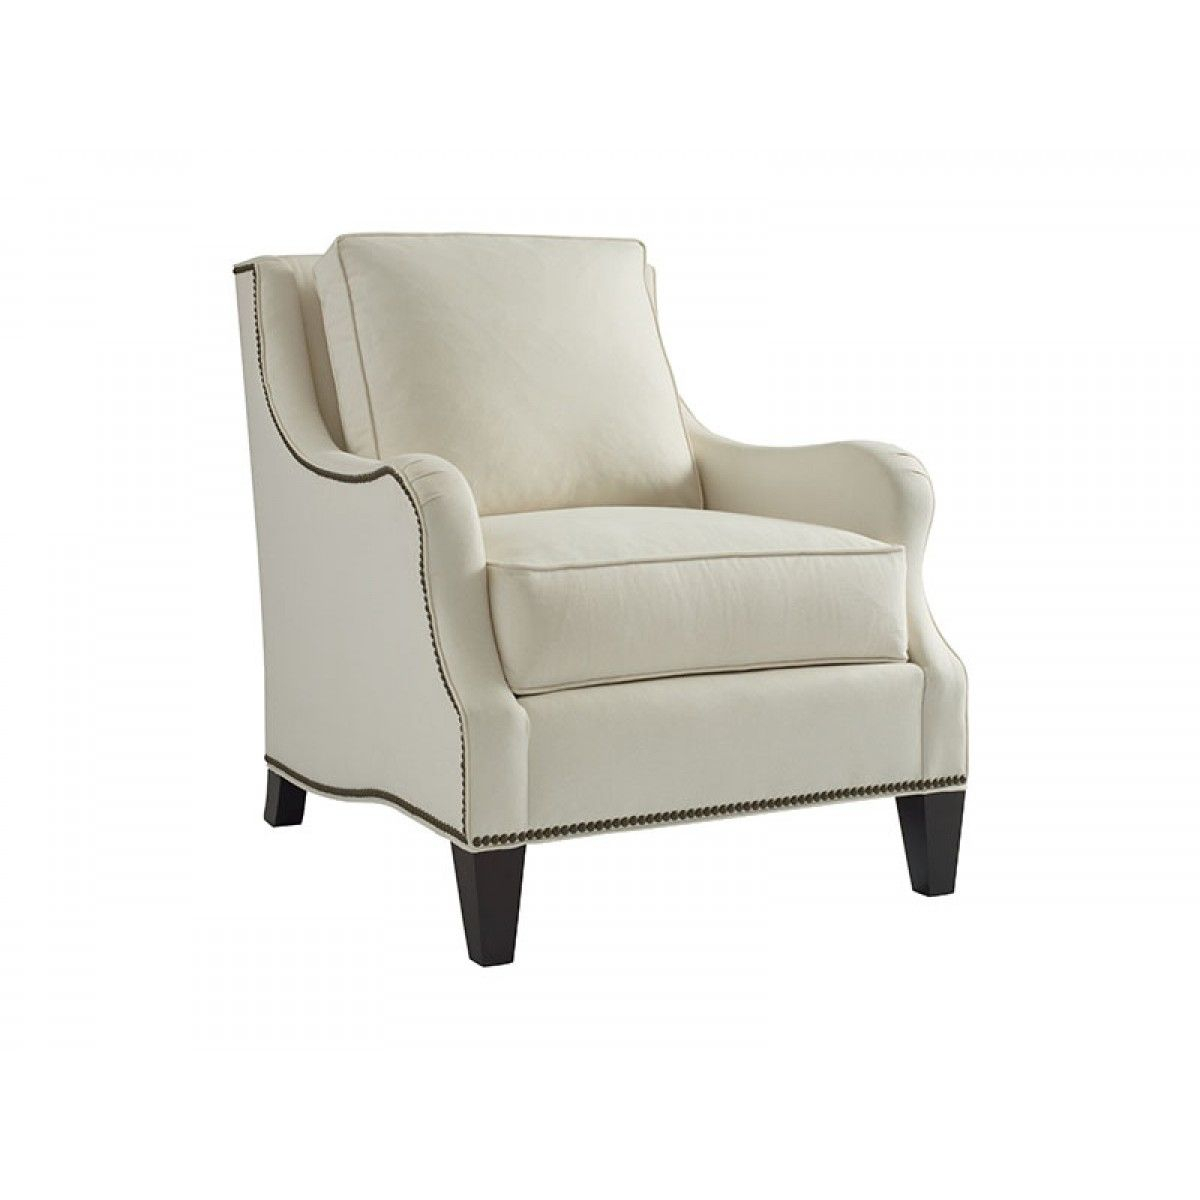 Thomasville Upholstery/leather Aiden Chair | Furniture | Pinterest In Aidan Ii Swivel Accent Chairs (View 9 of 25)